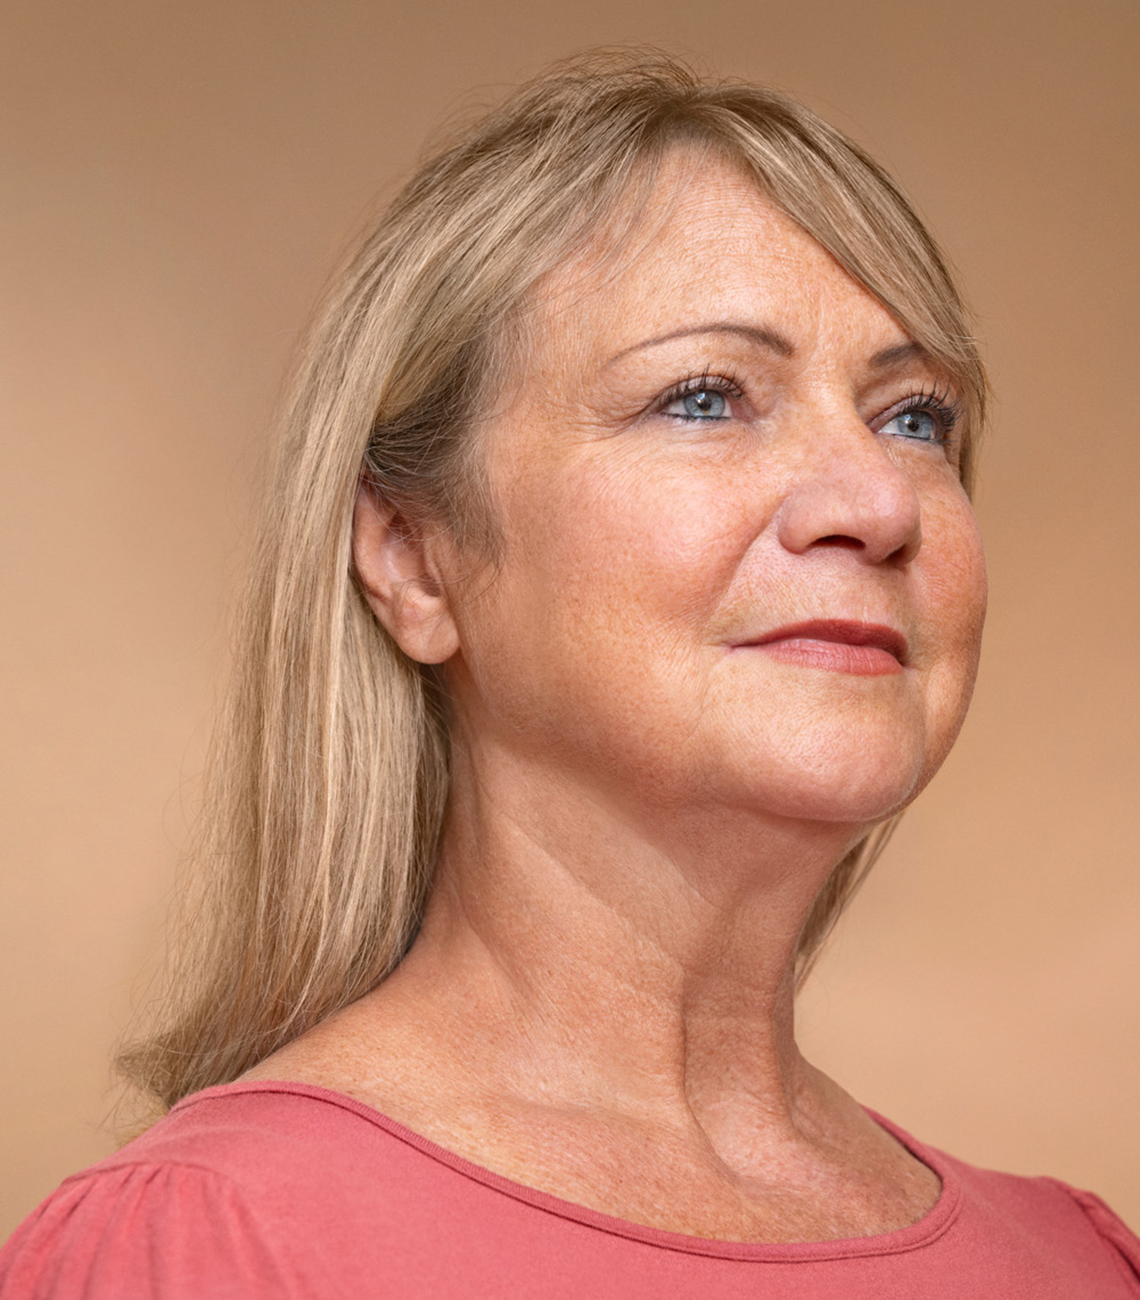 A woman after T-cell therapy for cancer